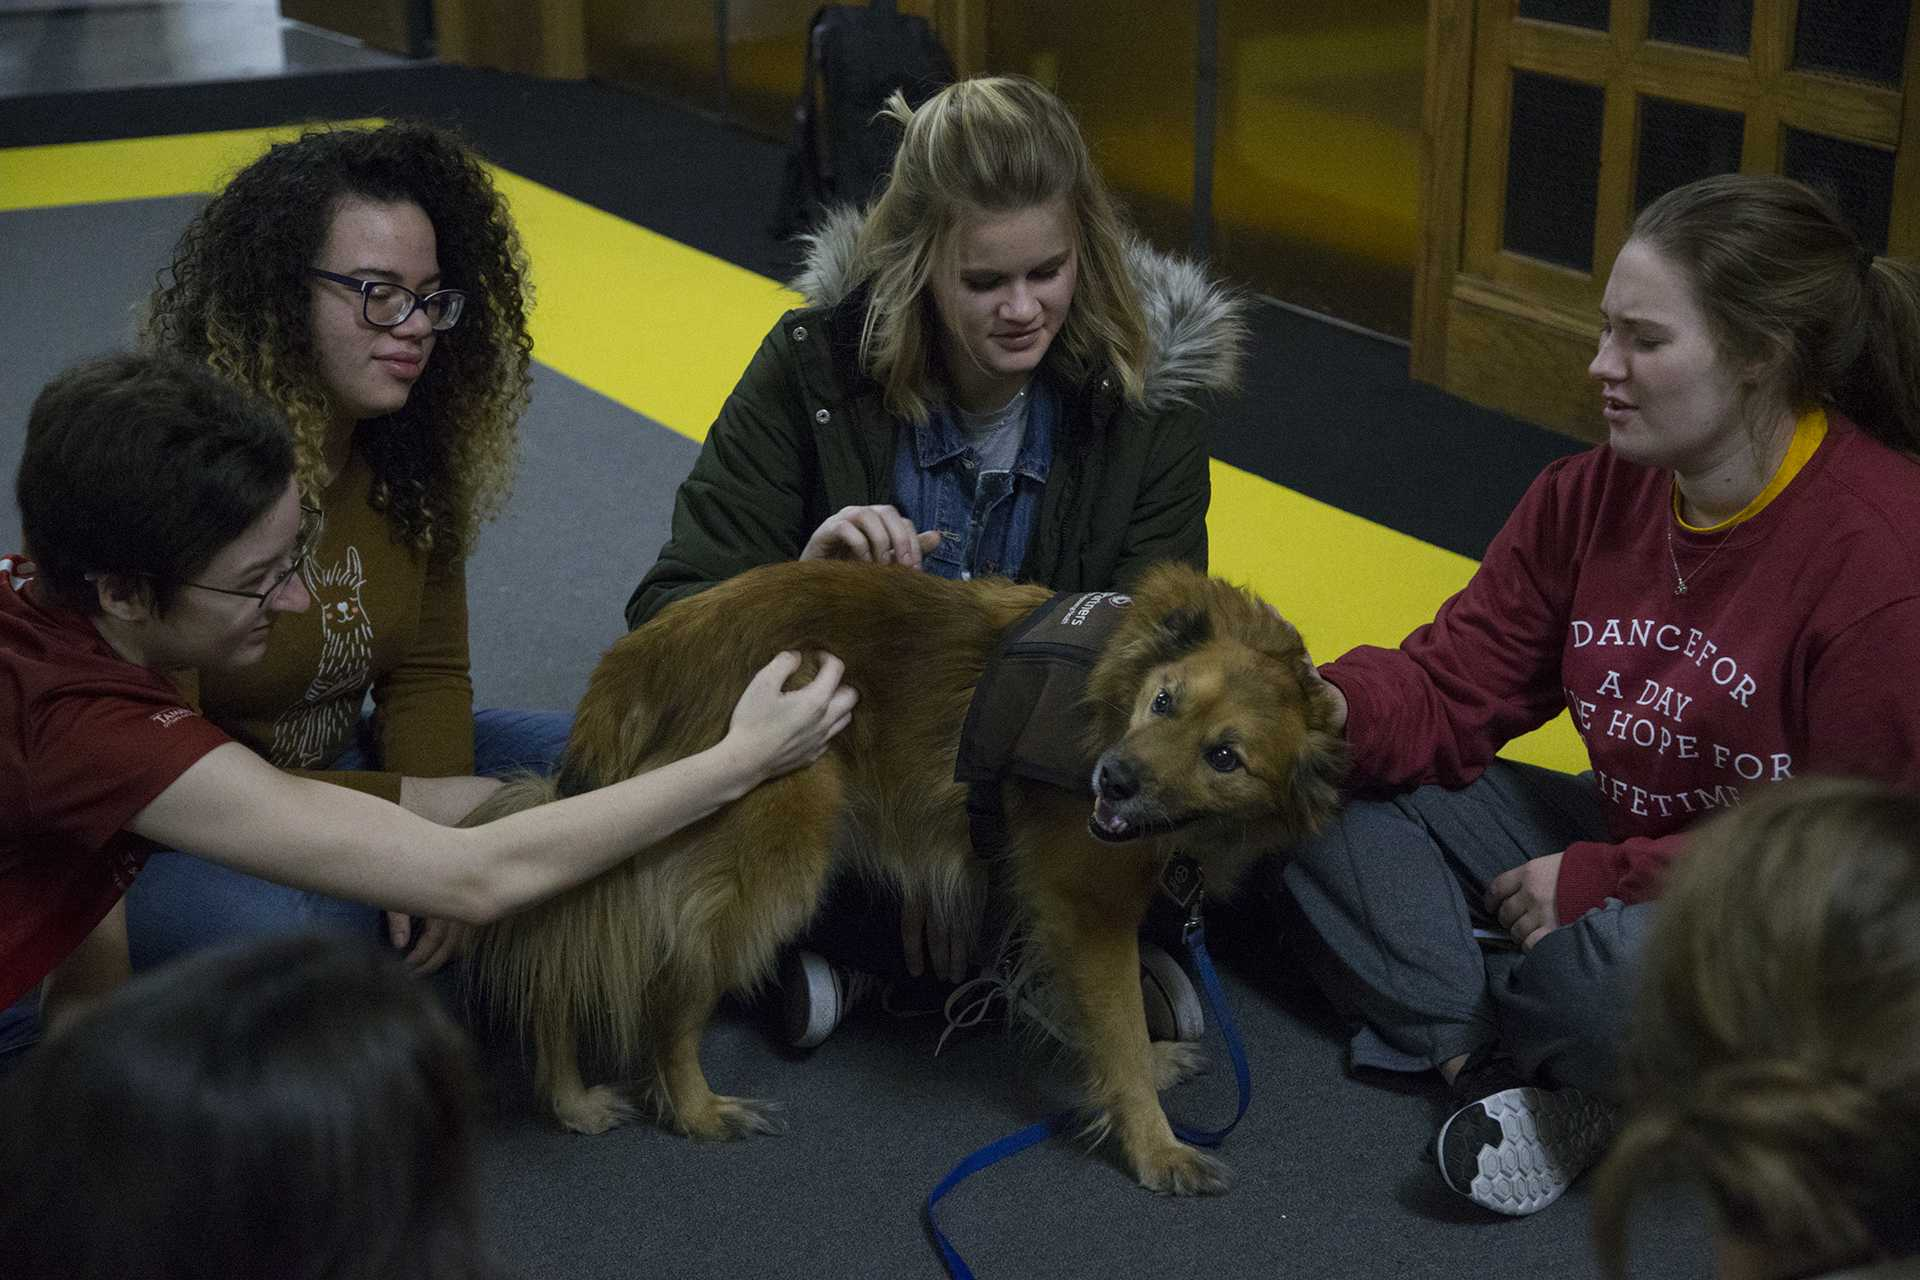 DITV: Therapy animals provide comfort for those who need emotional relief